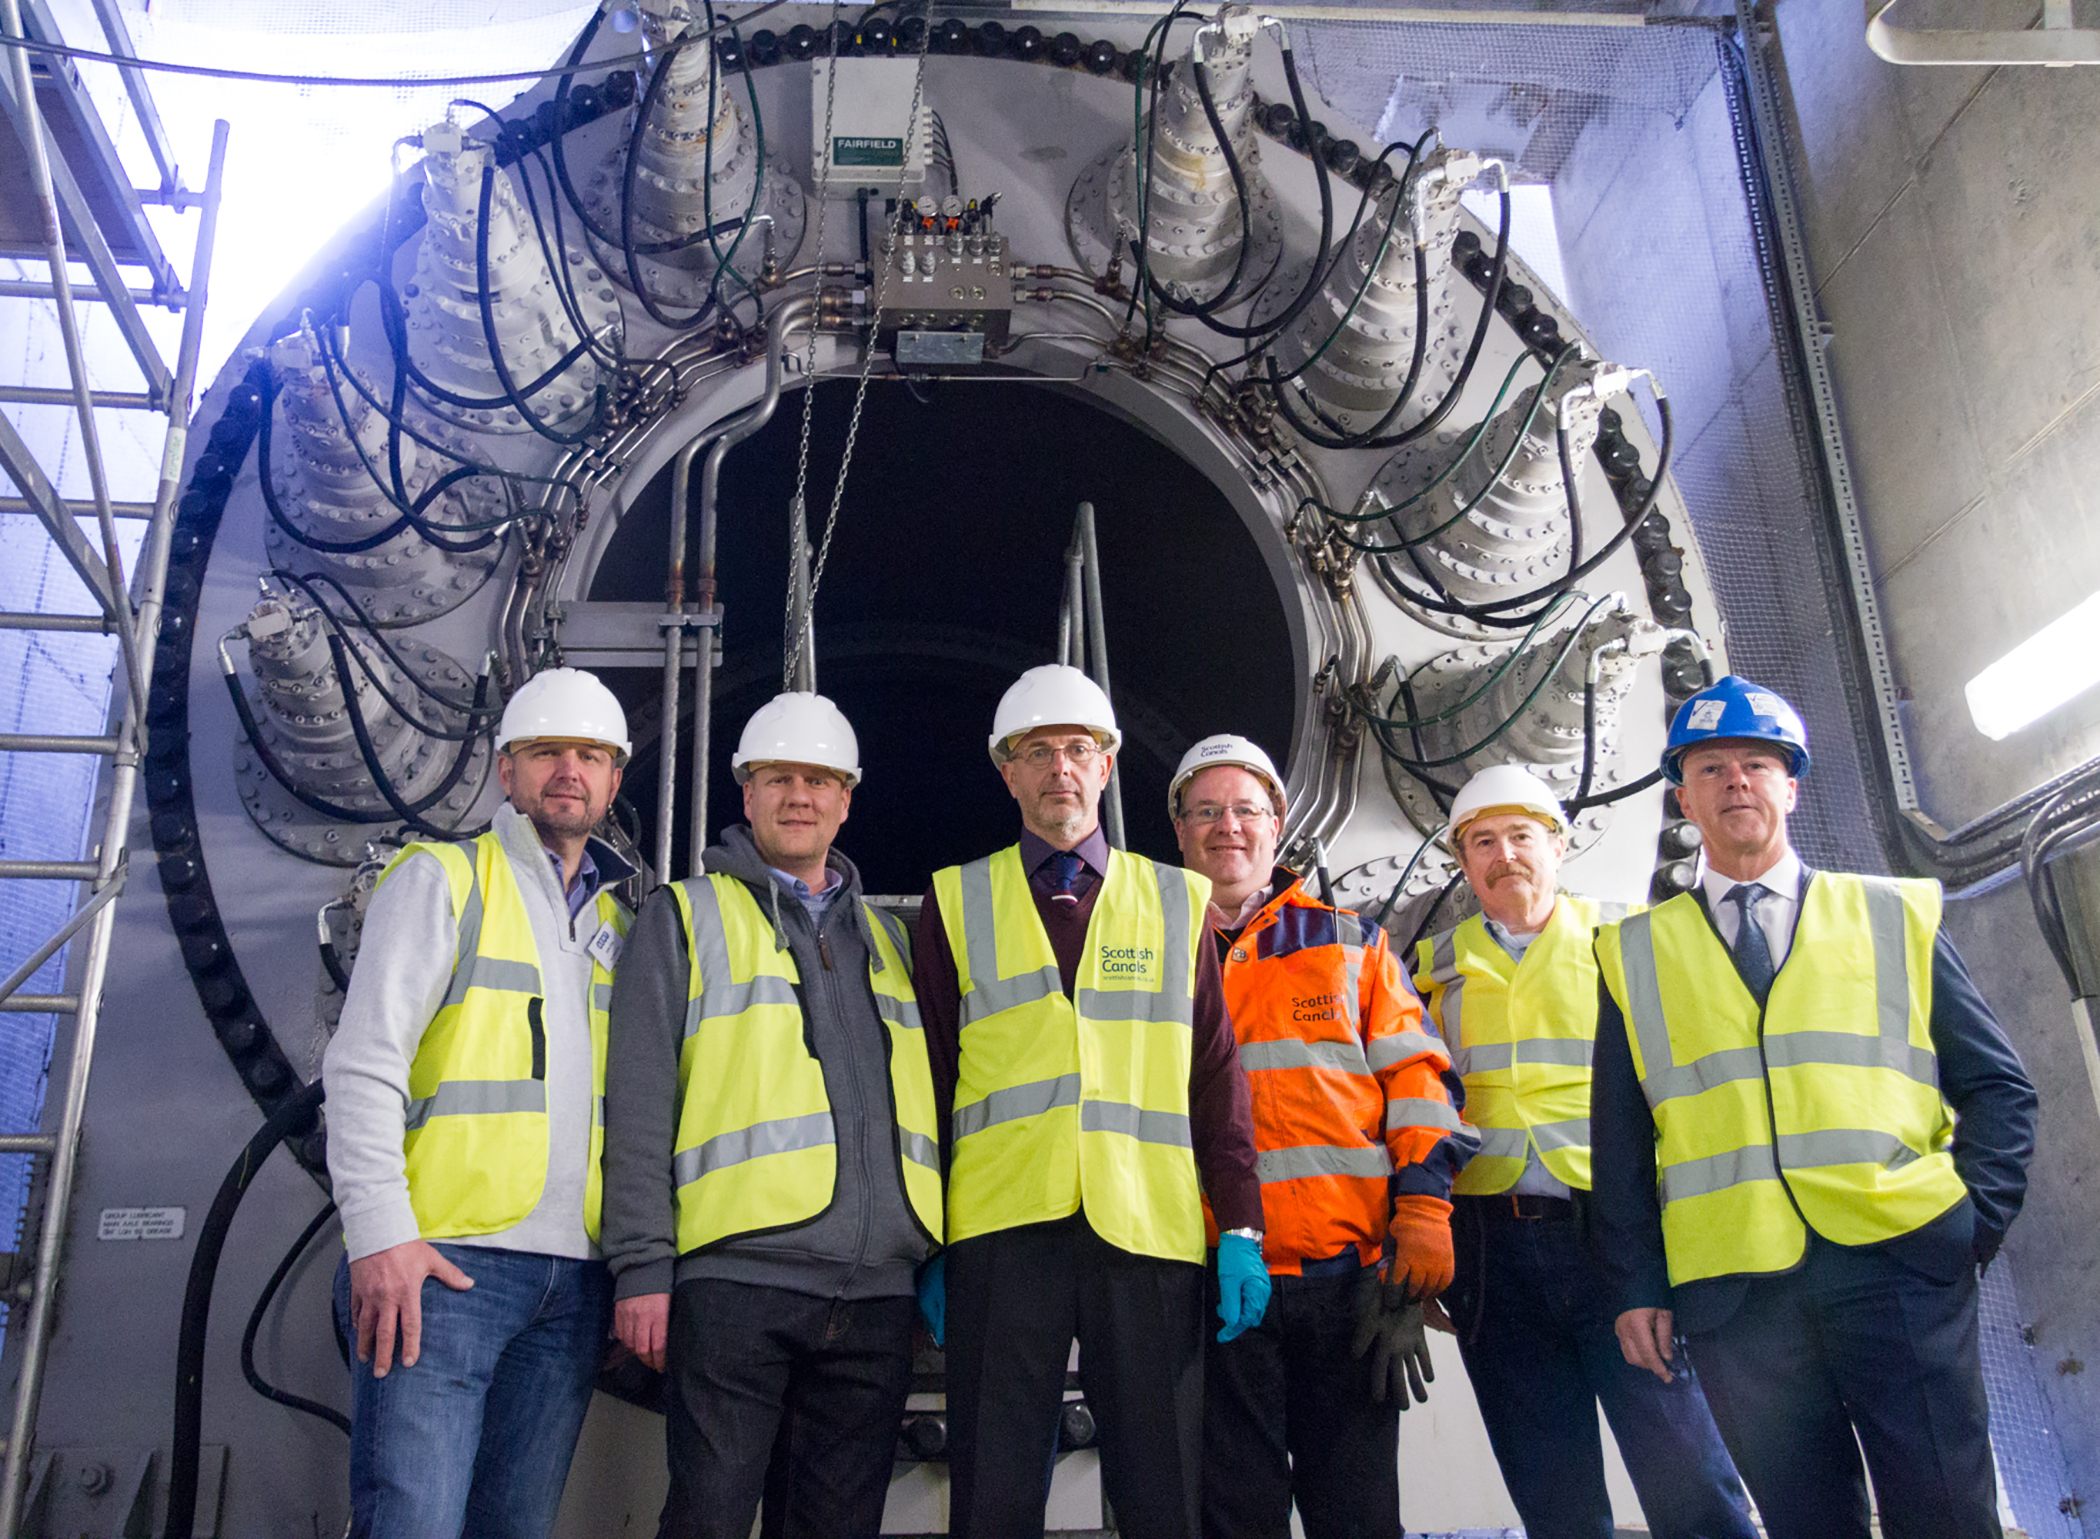 AEMT Visits the Scottish Canal's Falkirk Wheel.